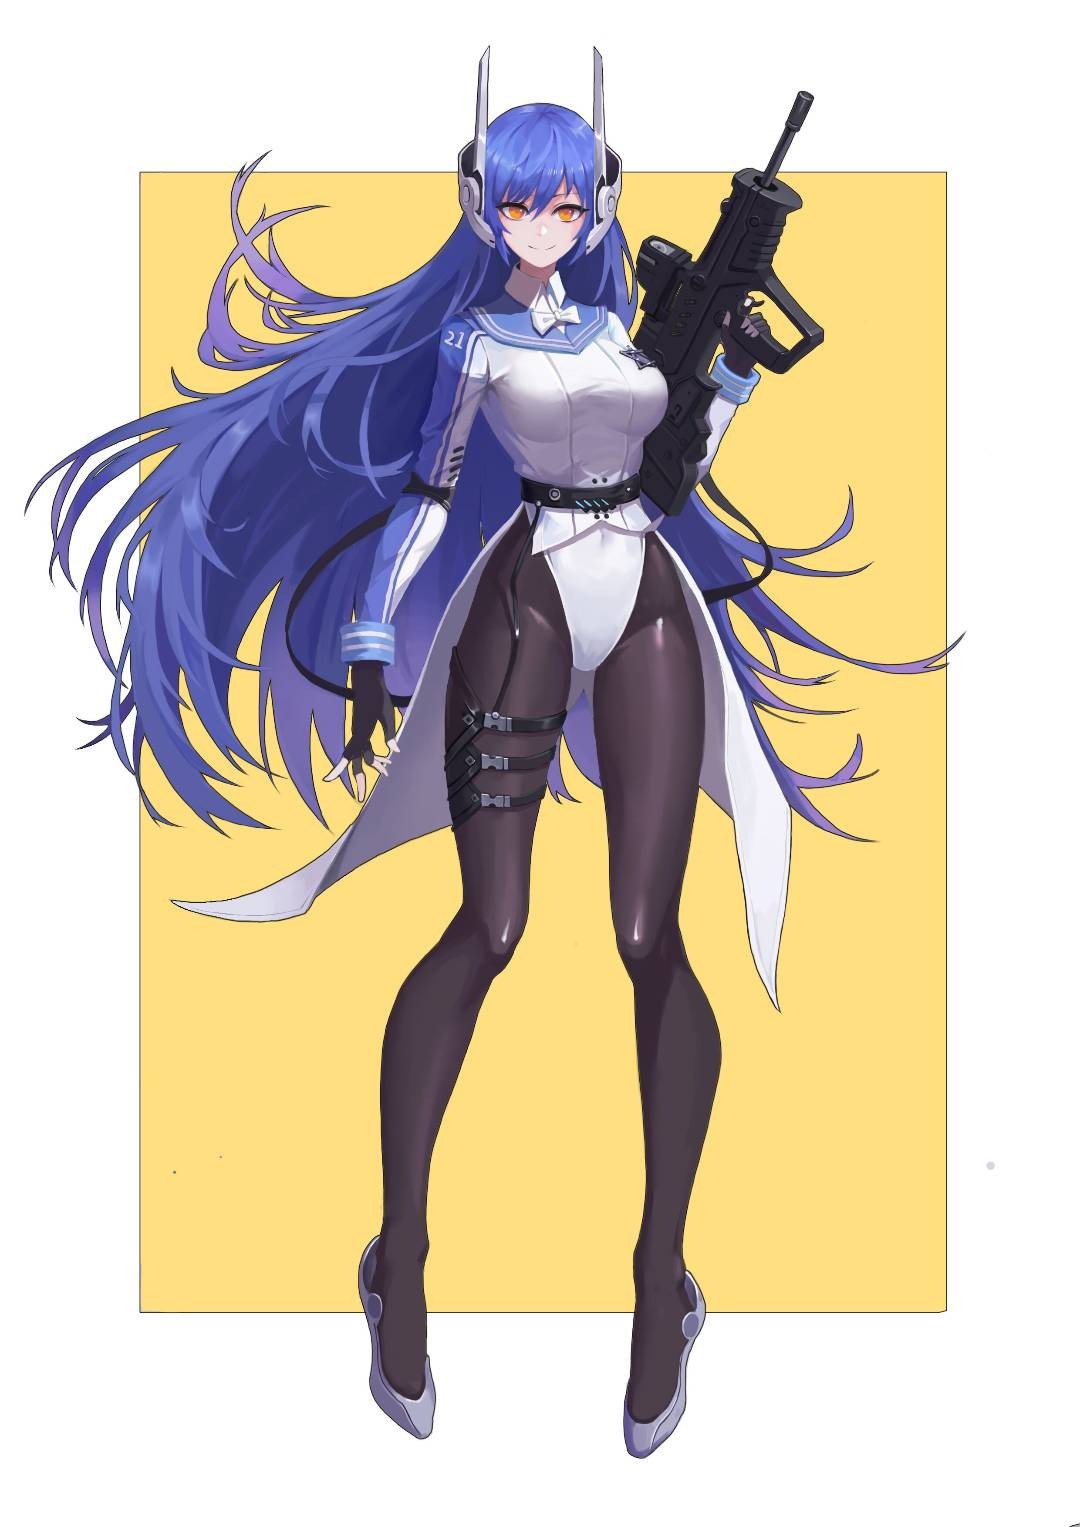 1girl assault_rifle belt black_gloves black_legwear blue_hair border breasts brown_legwear bullpup eyebrows_behind_hair fingerless_gloves floating_headgear girls_frontline gloves gun hexagram highres imi_tavor_tar-21 jacket leotard leotard_under_clothes long_hair long_sleeves looking_at_viewer mecha_musume medium_breasts orange_eyes pantyhose personification rifle robot_ears shoes solo standing star_of_david tailcoat tar-21_(girls_frontline) very_long_hair weapon white_border white_footwear white_leotard wristband yellow_background yellow_eyes zwc1271750321